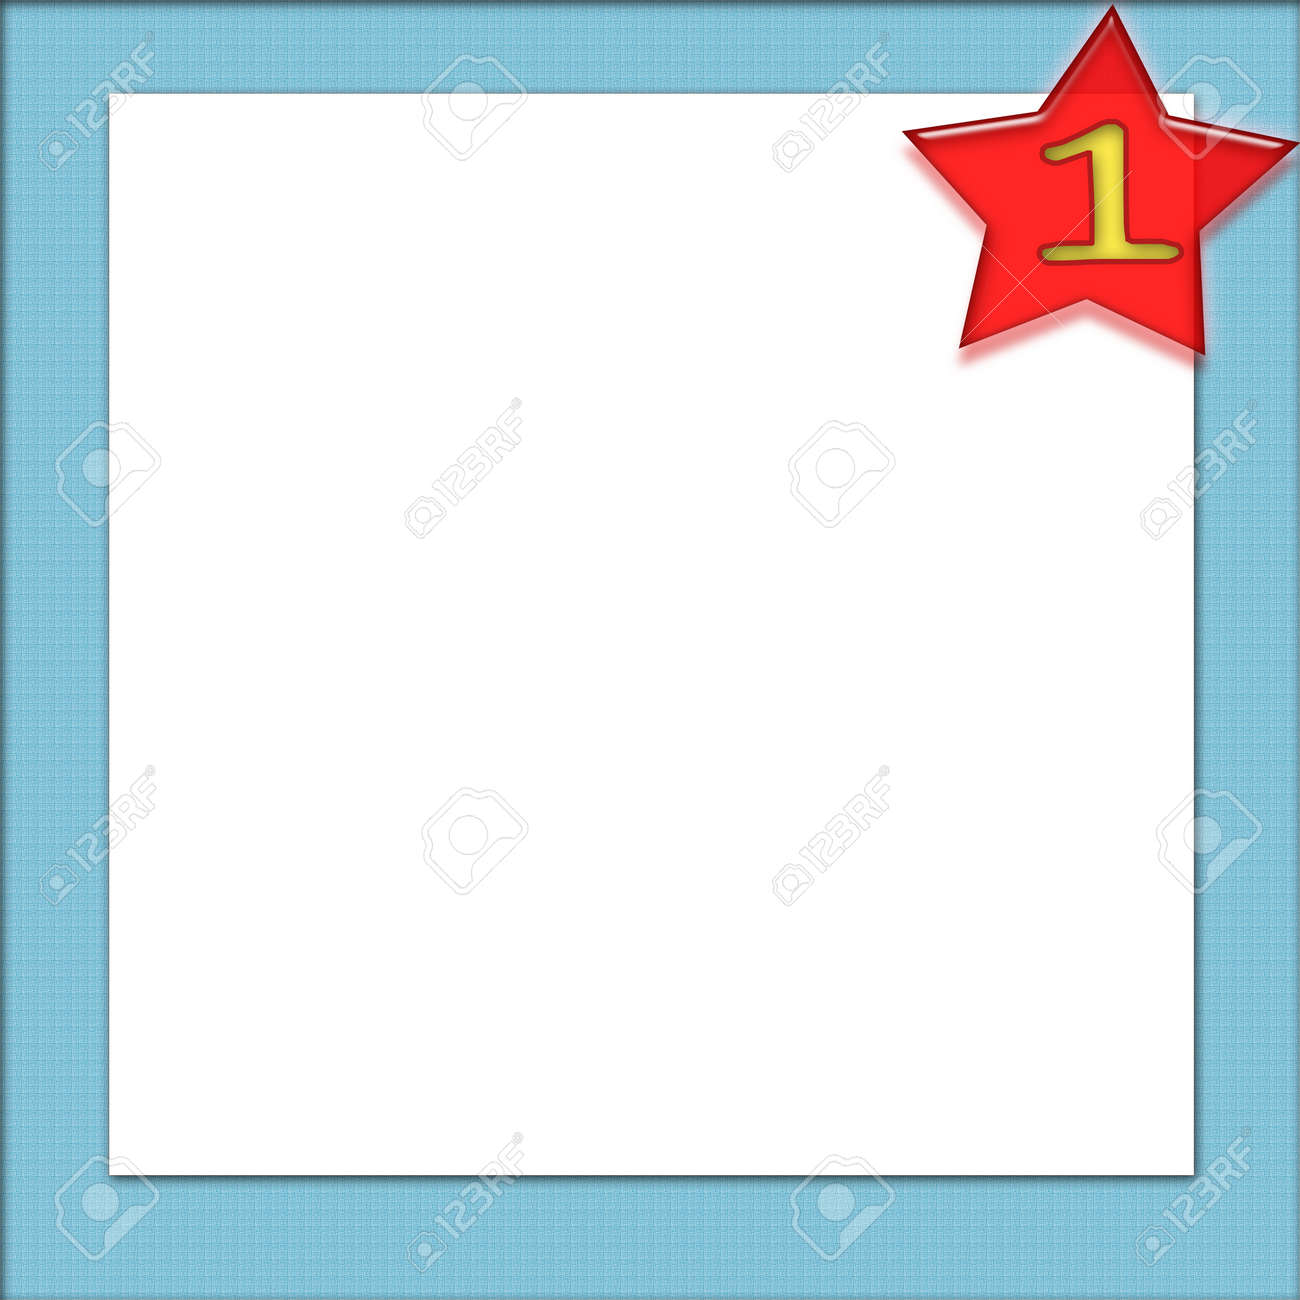 picture frame no.1 Stock Vector - 12902560